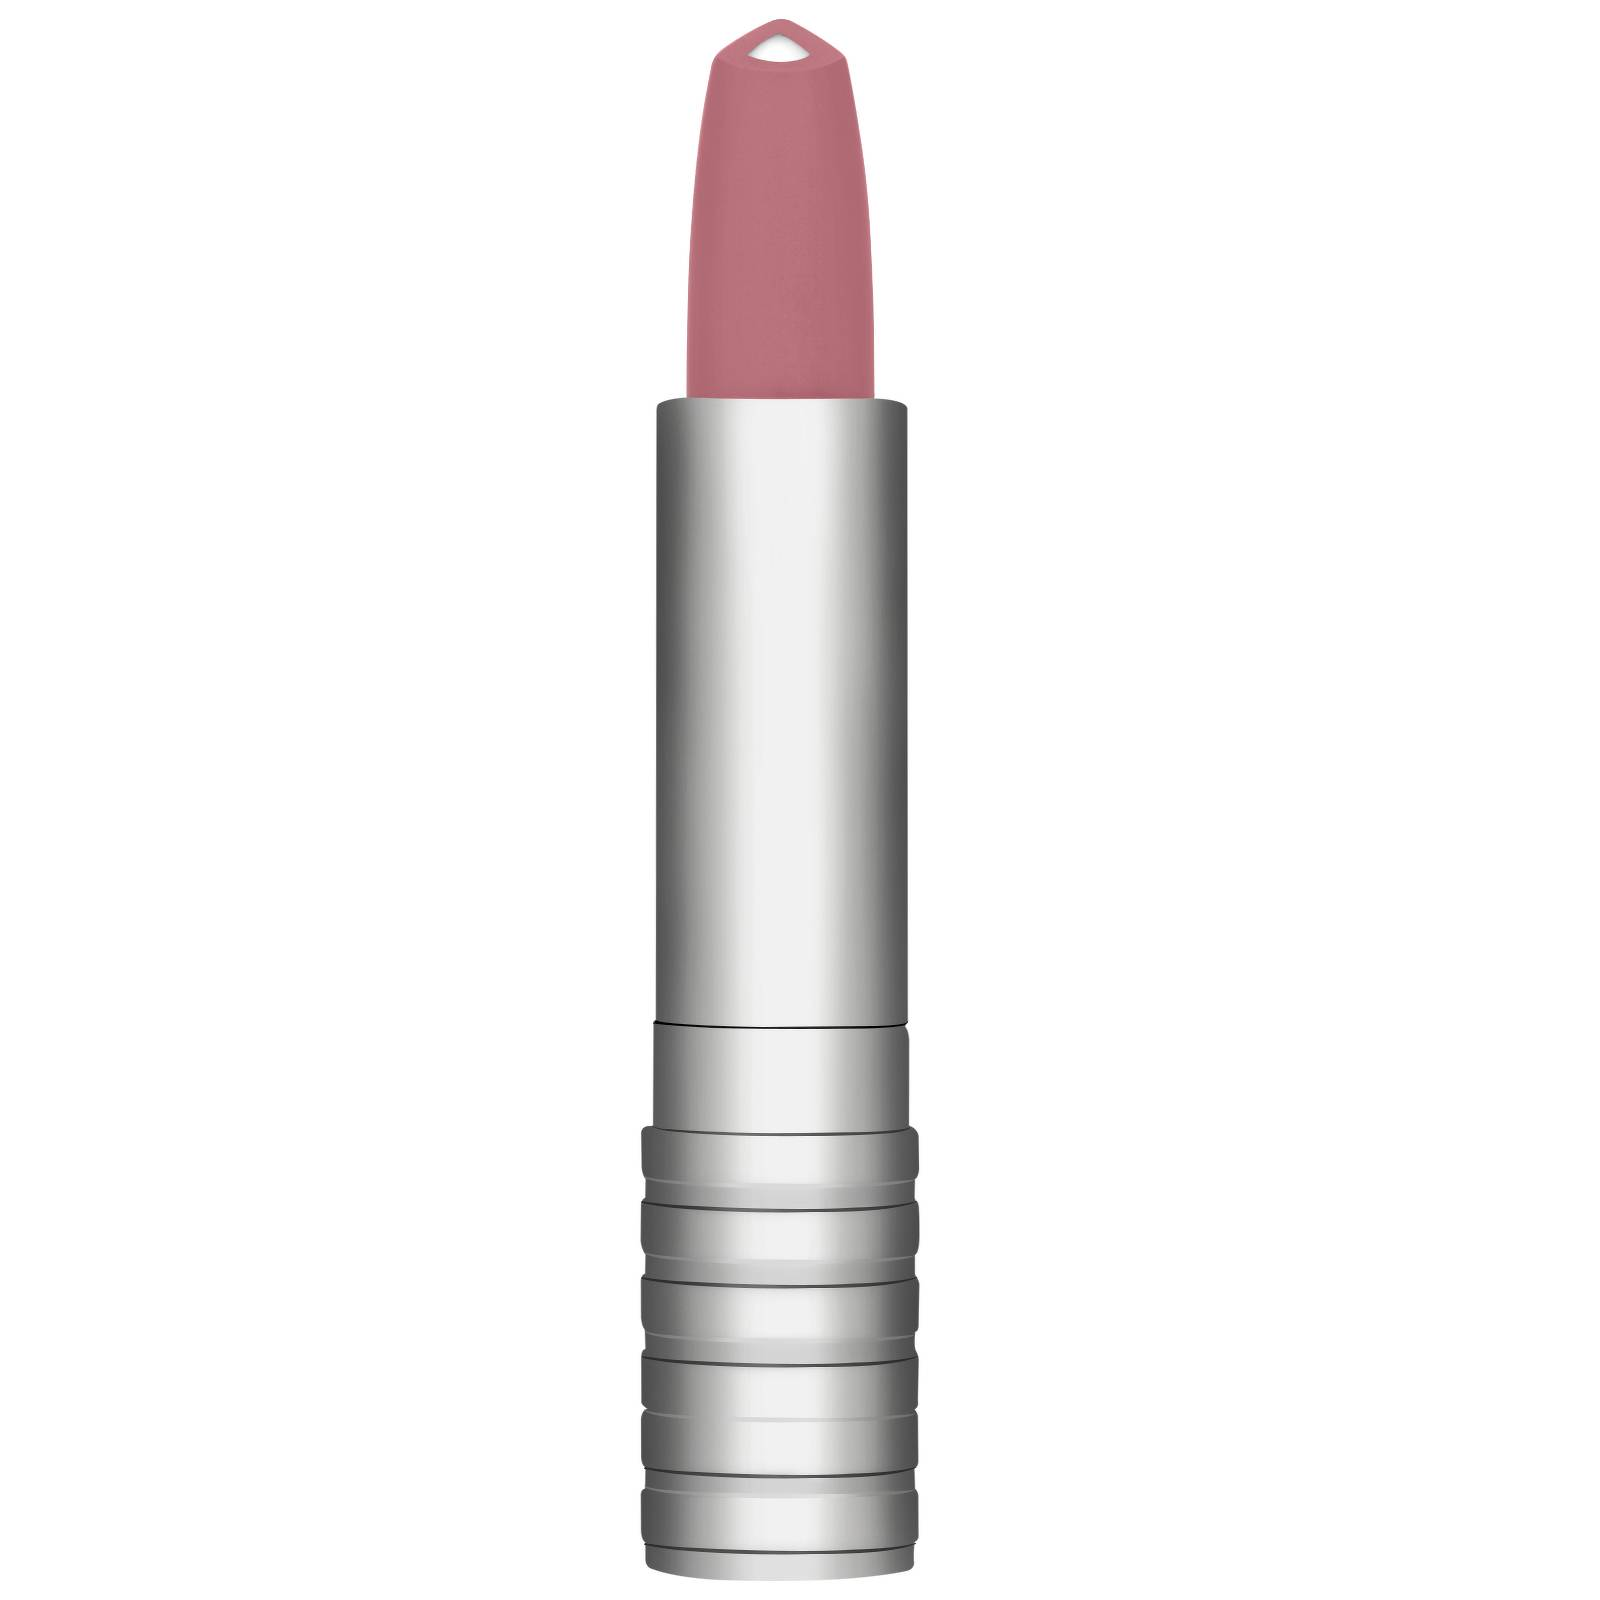 Clinique - Dramatically Different Lip Shaping Lipstick 32 Wine & Dine 3g / 0.10oz. for Women